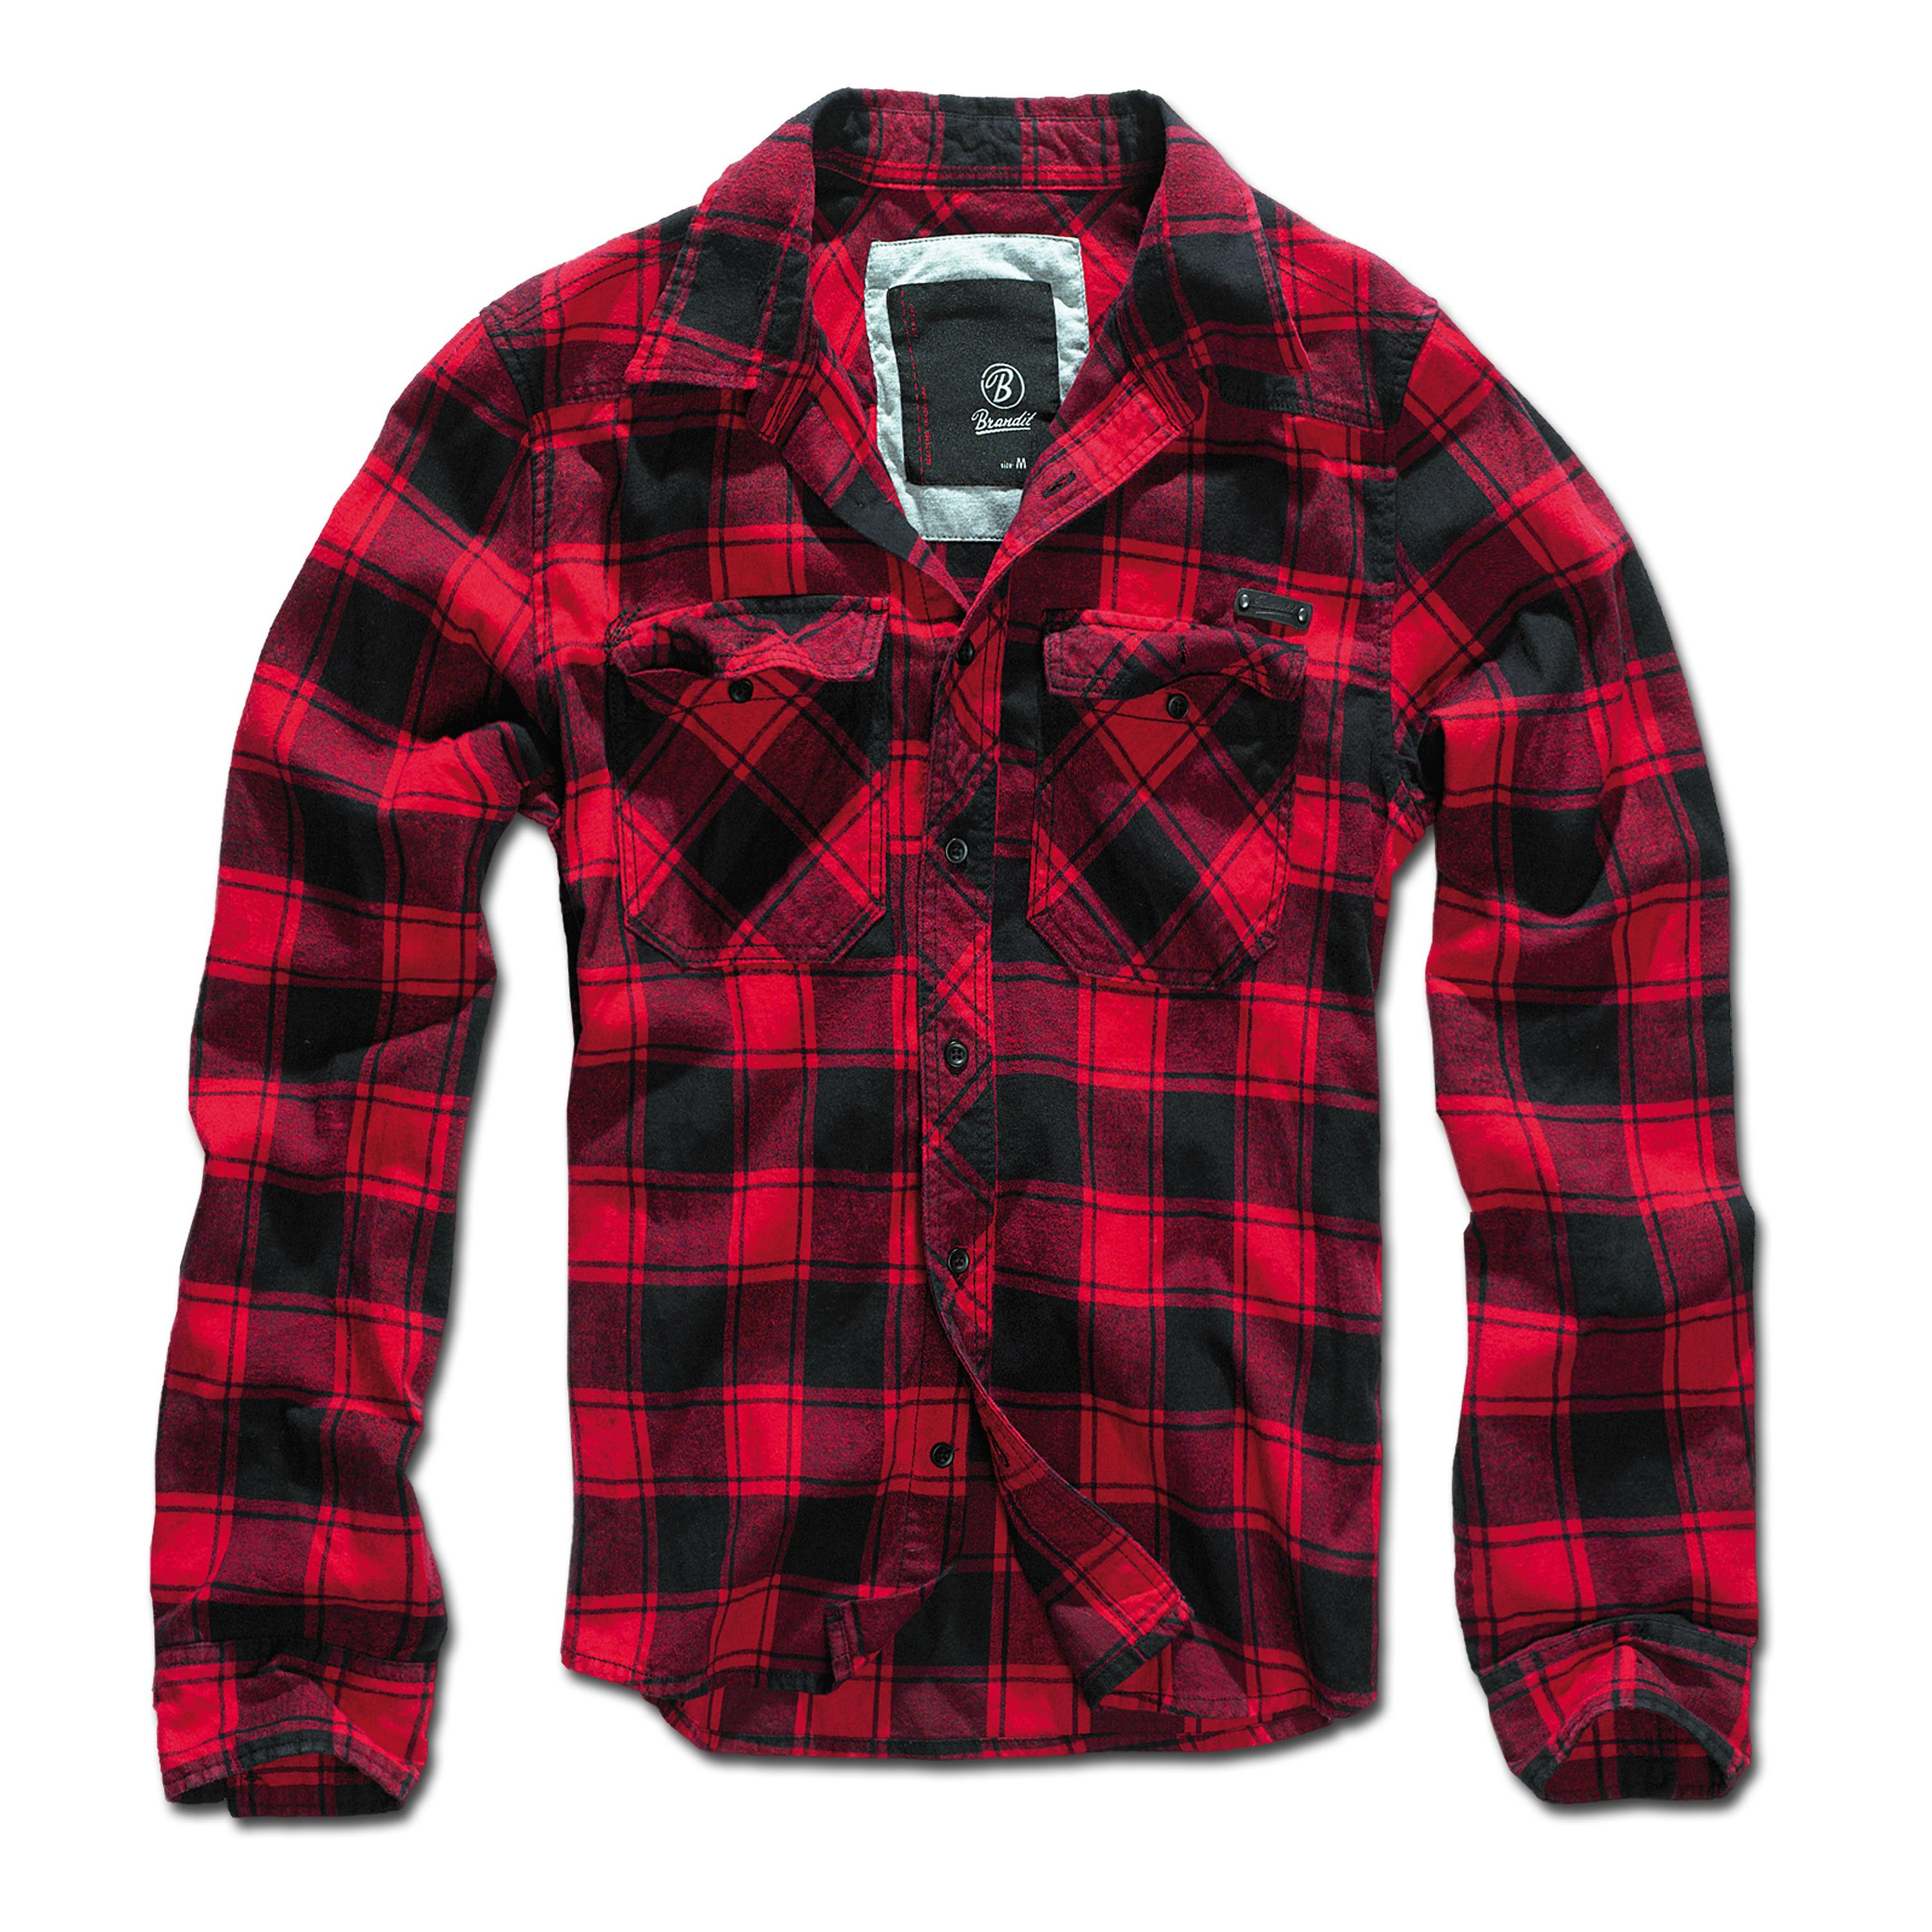 Brandit Check Shirt, black/red